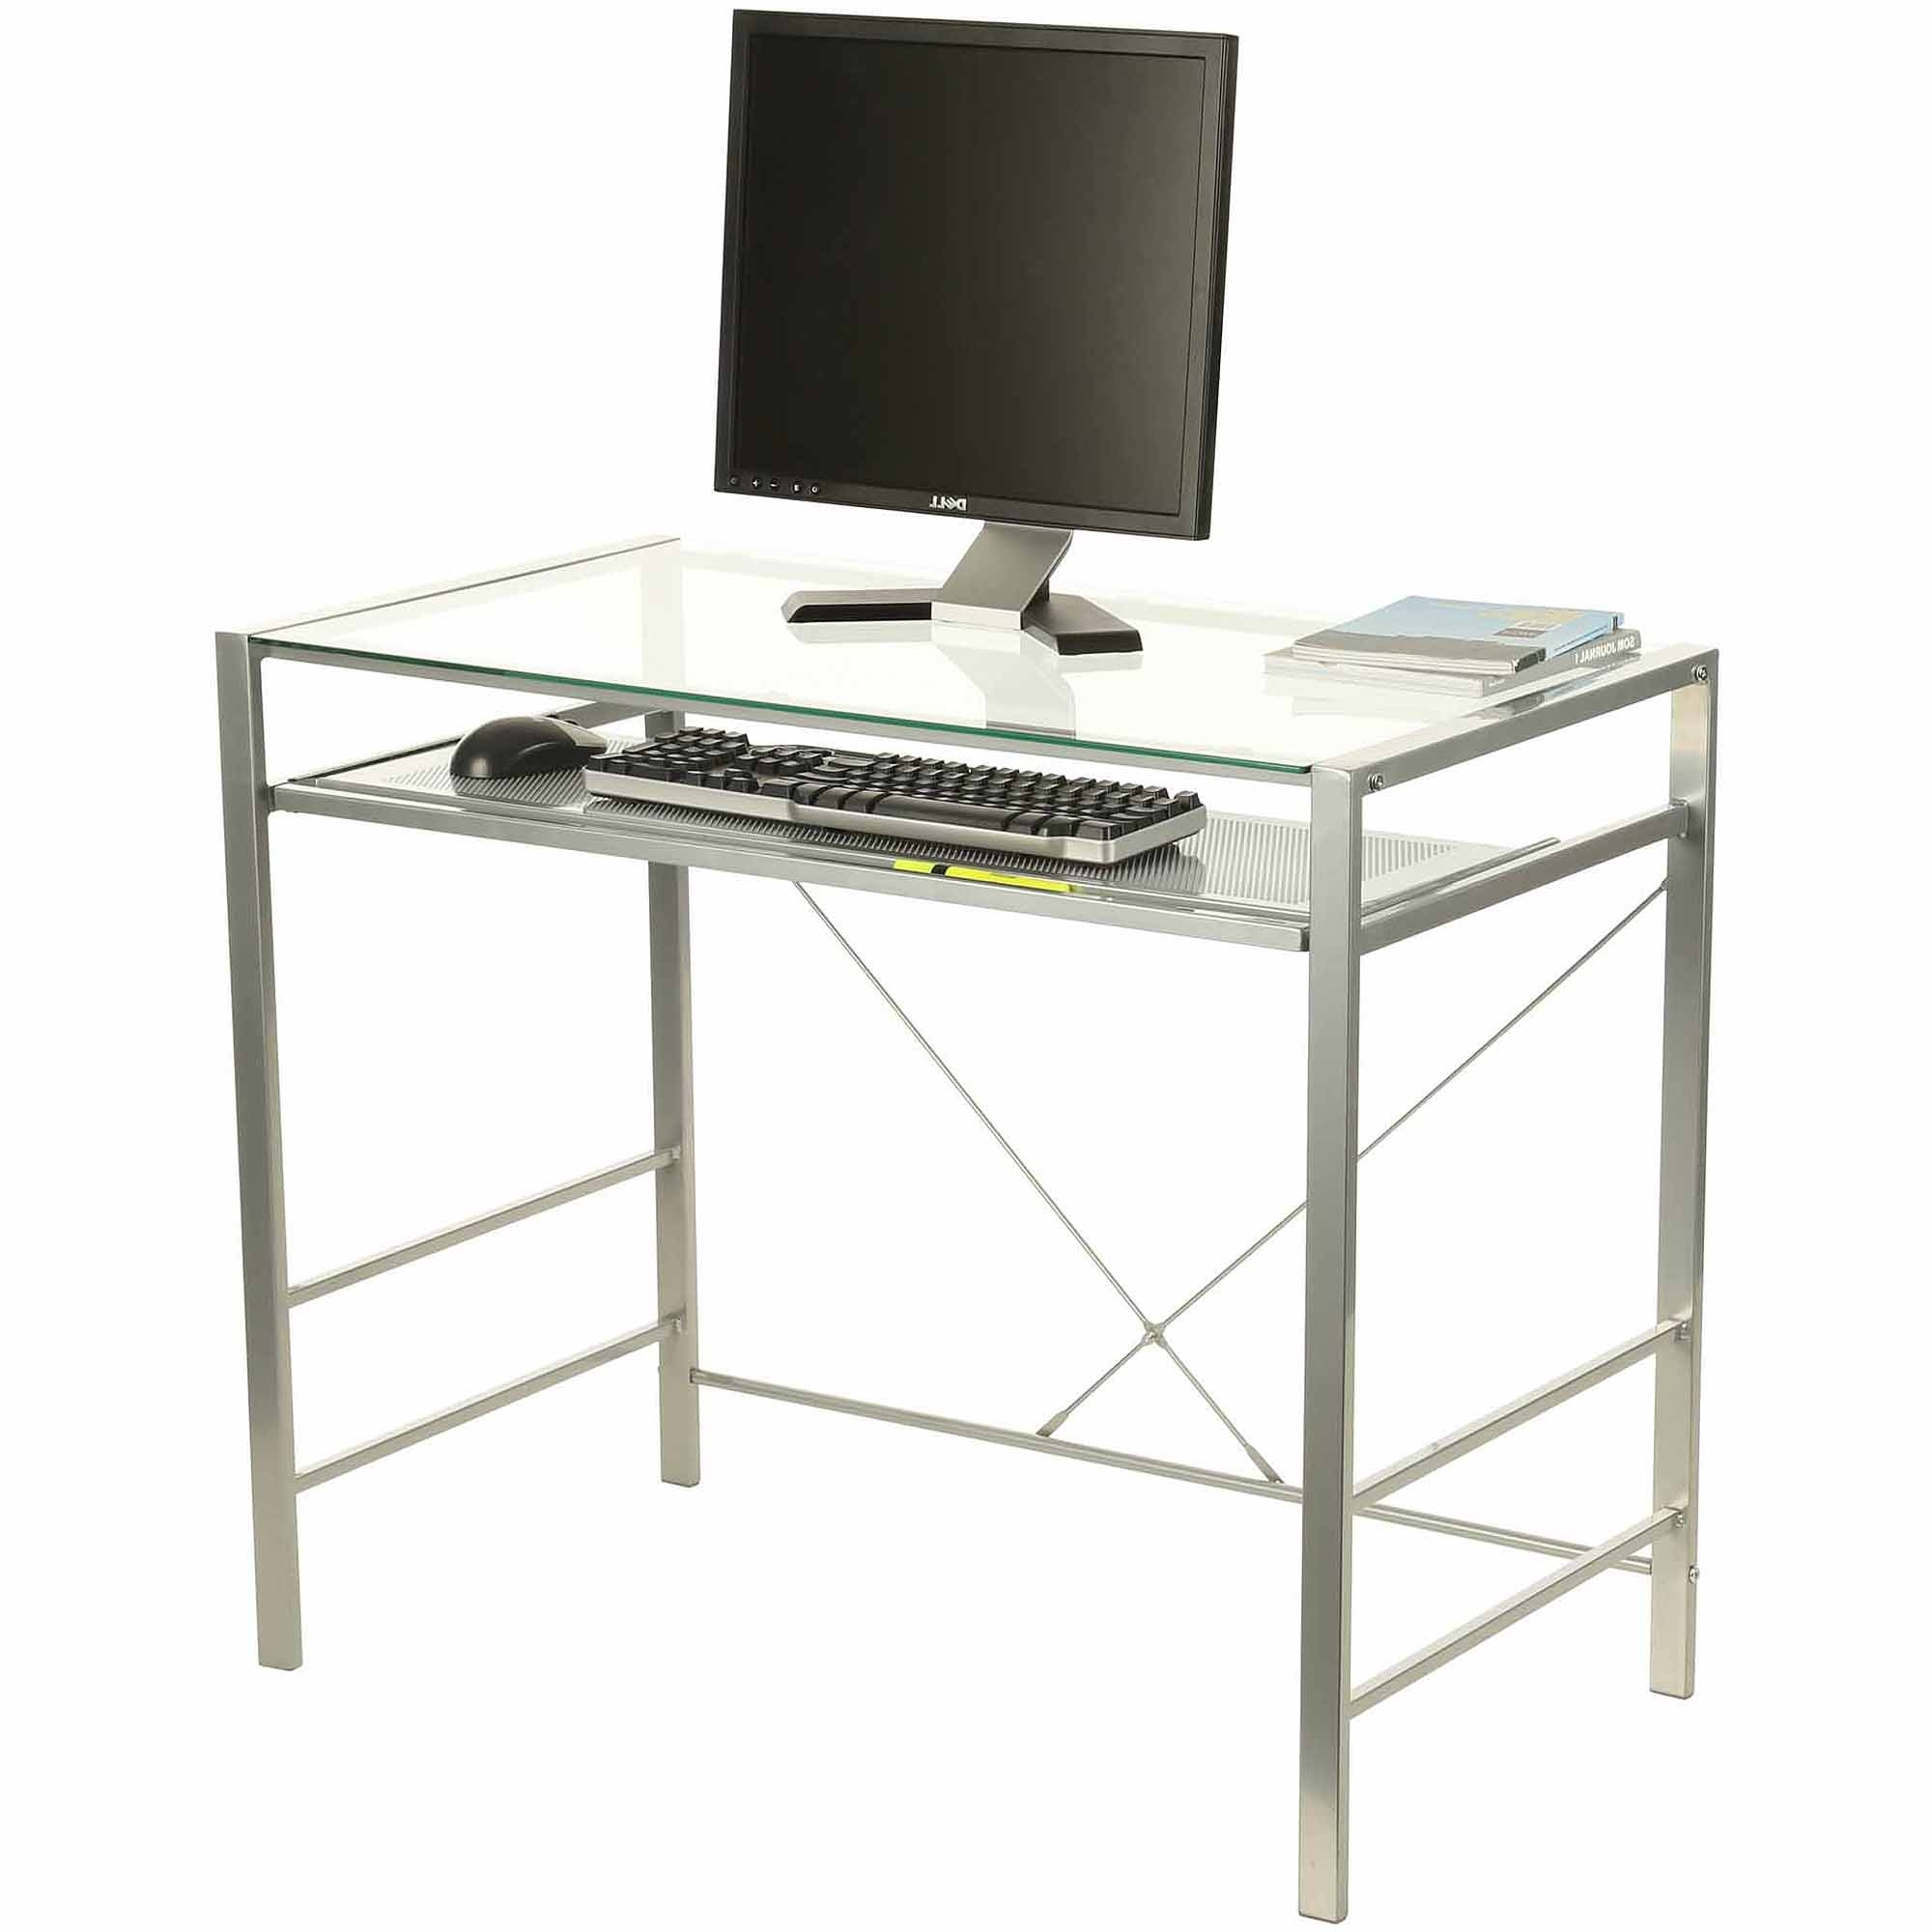 Capri Glass And Metal Desk, Silver – Walmart Inside Most Recent Glass And Metal Computer Desks (View 3 of 20)